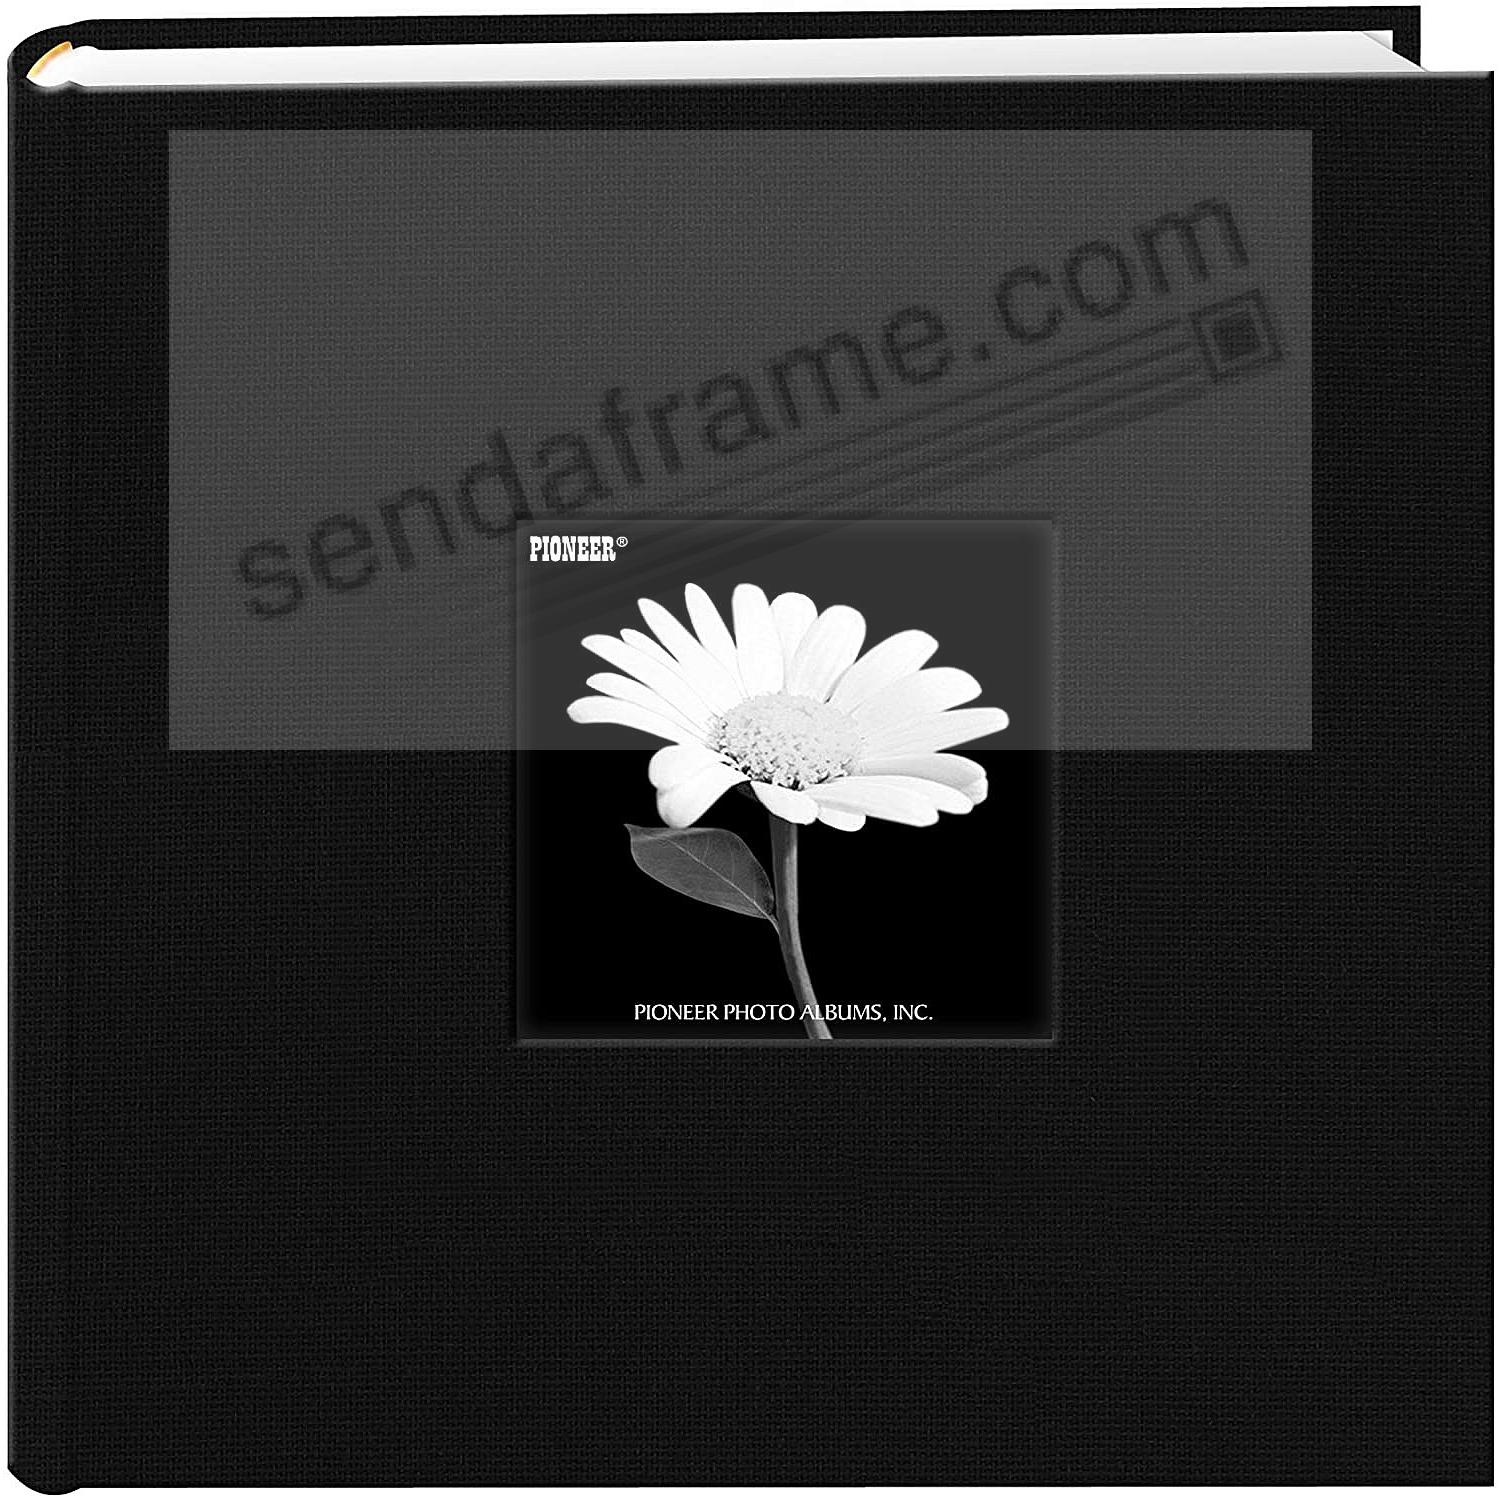 Deep-Black cloth 2-up 4x6 frame photo album by Pioneer®